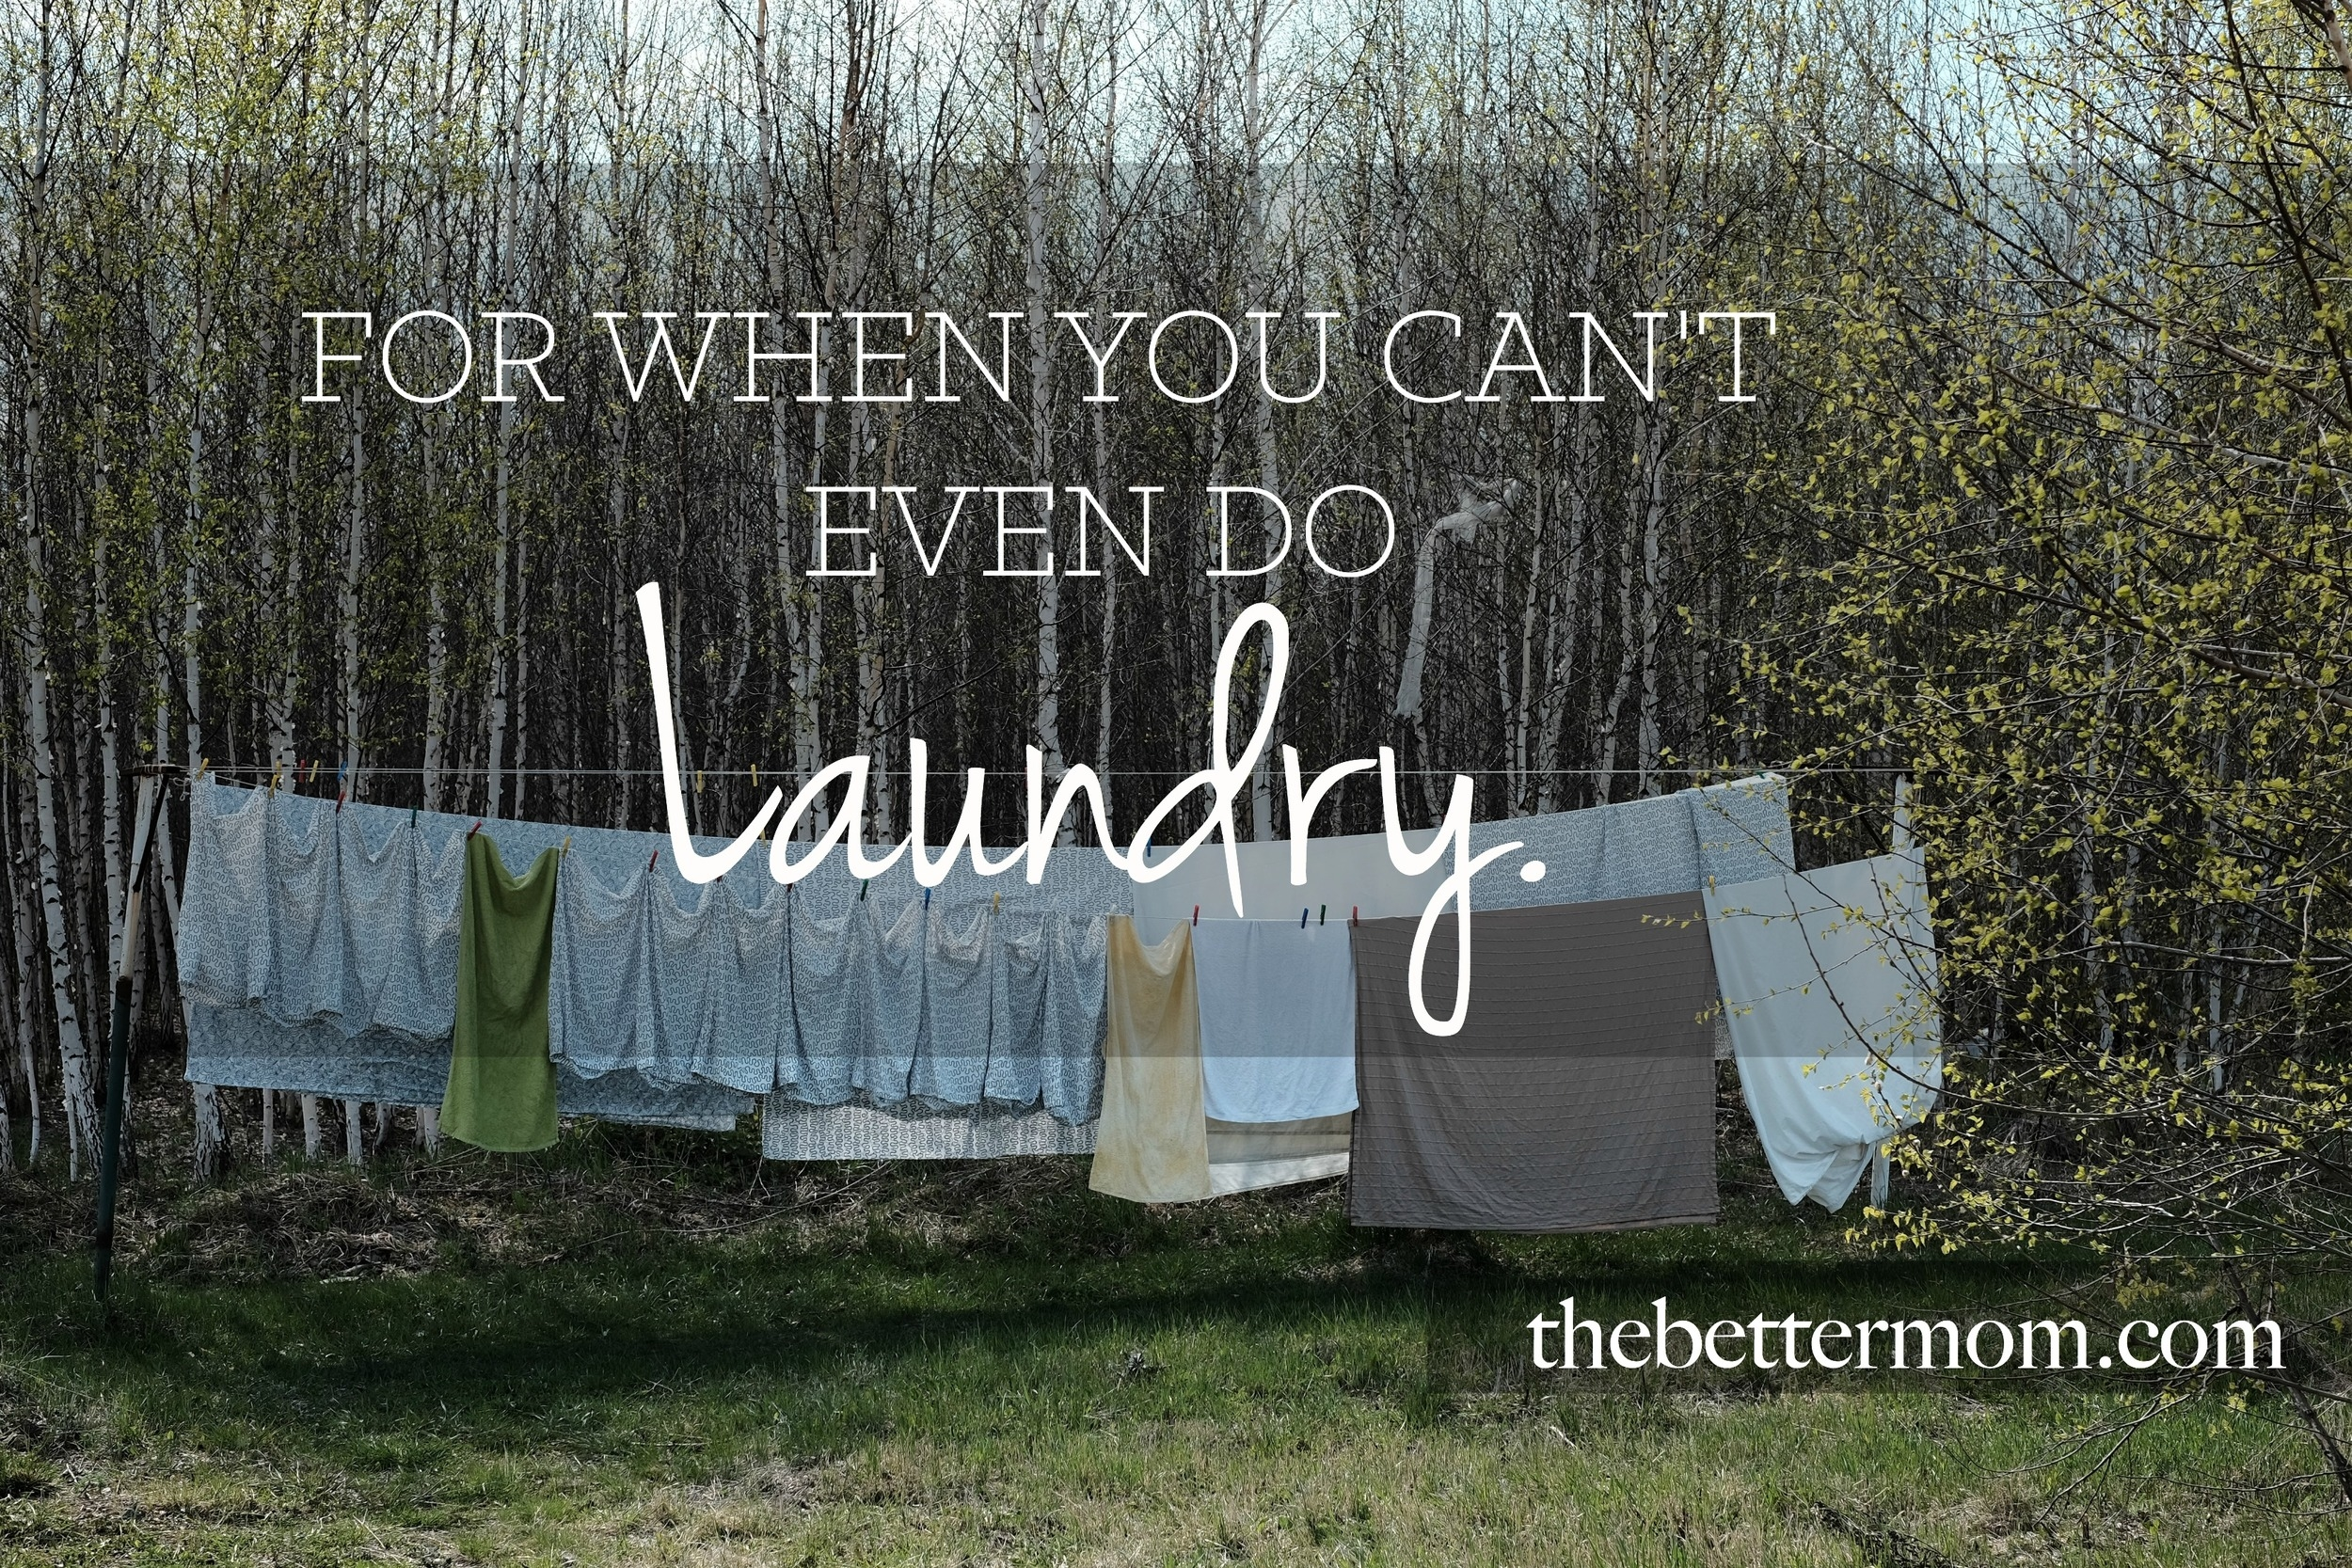 Are you trying to do it all? As moms, we often get overwhelmed by trying to take on everything, and with a complex that we must be supermom, never asking for help and never taking a break. Its easy to see our worth in our tasks, but maybe God is whispering that your identity lies elsewhere.